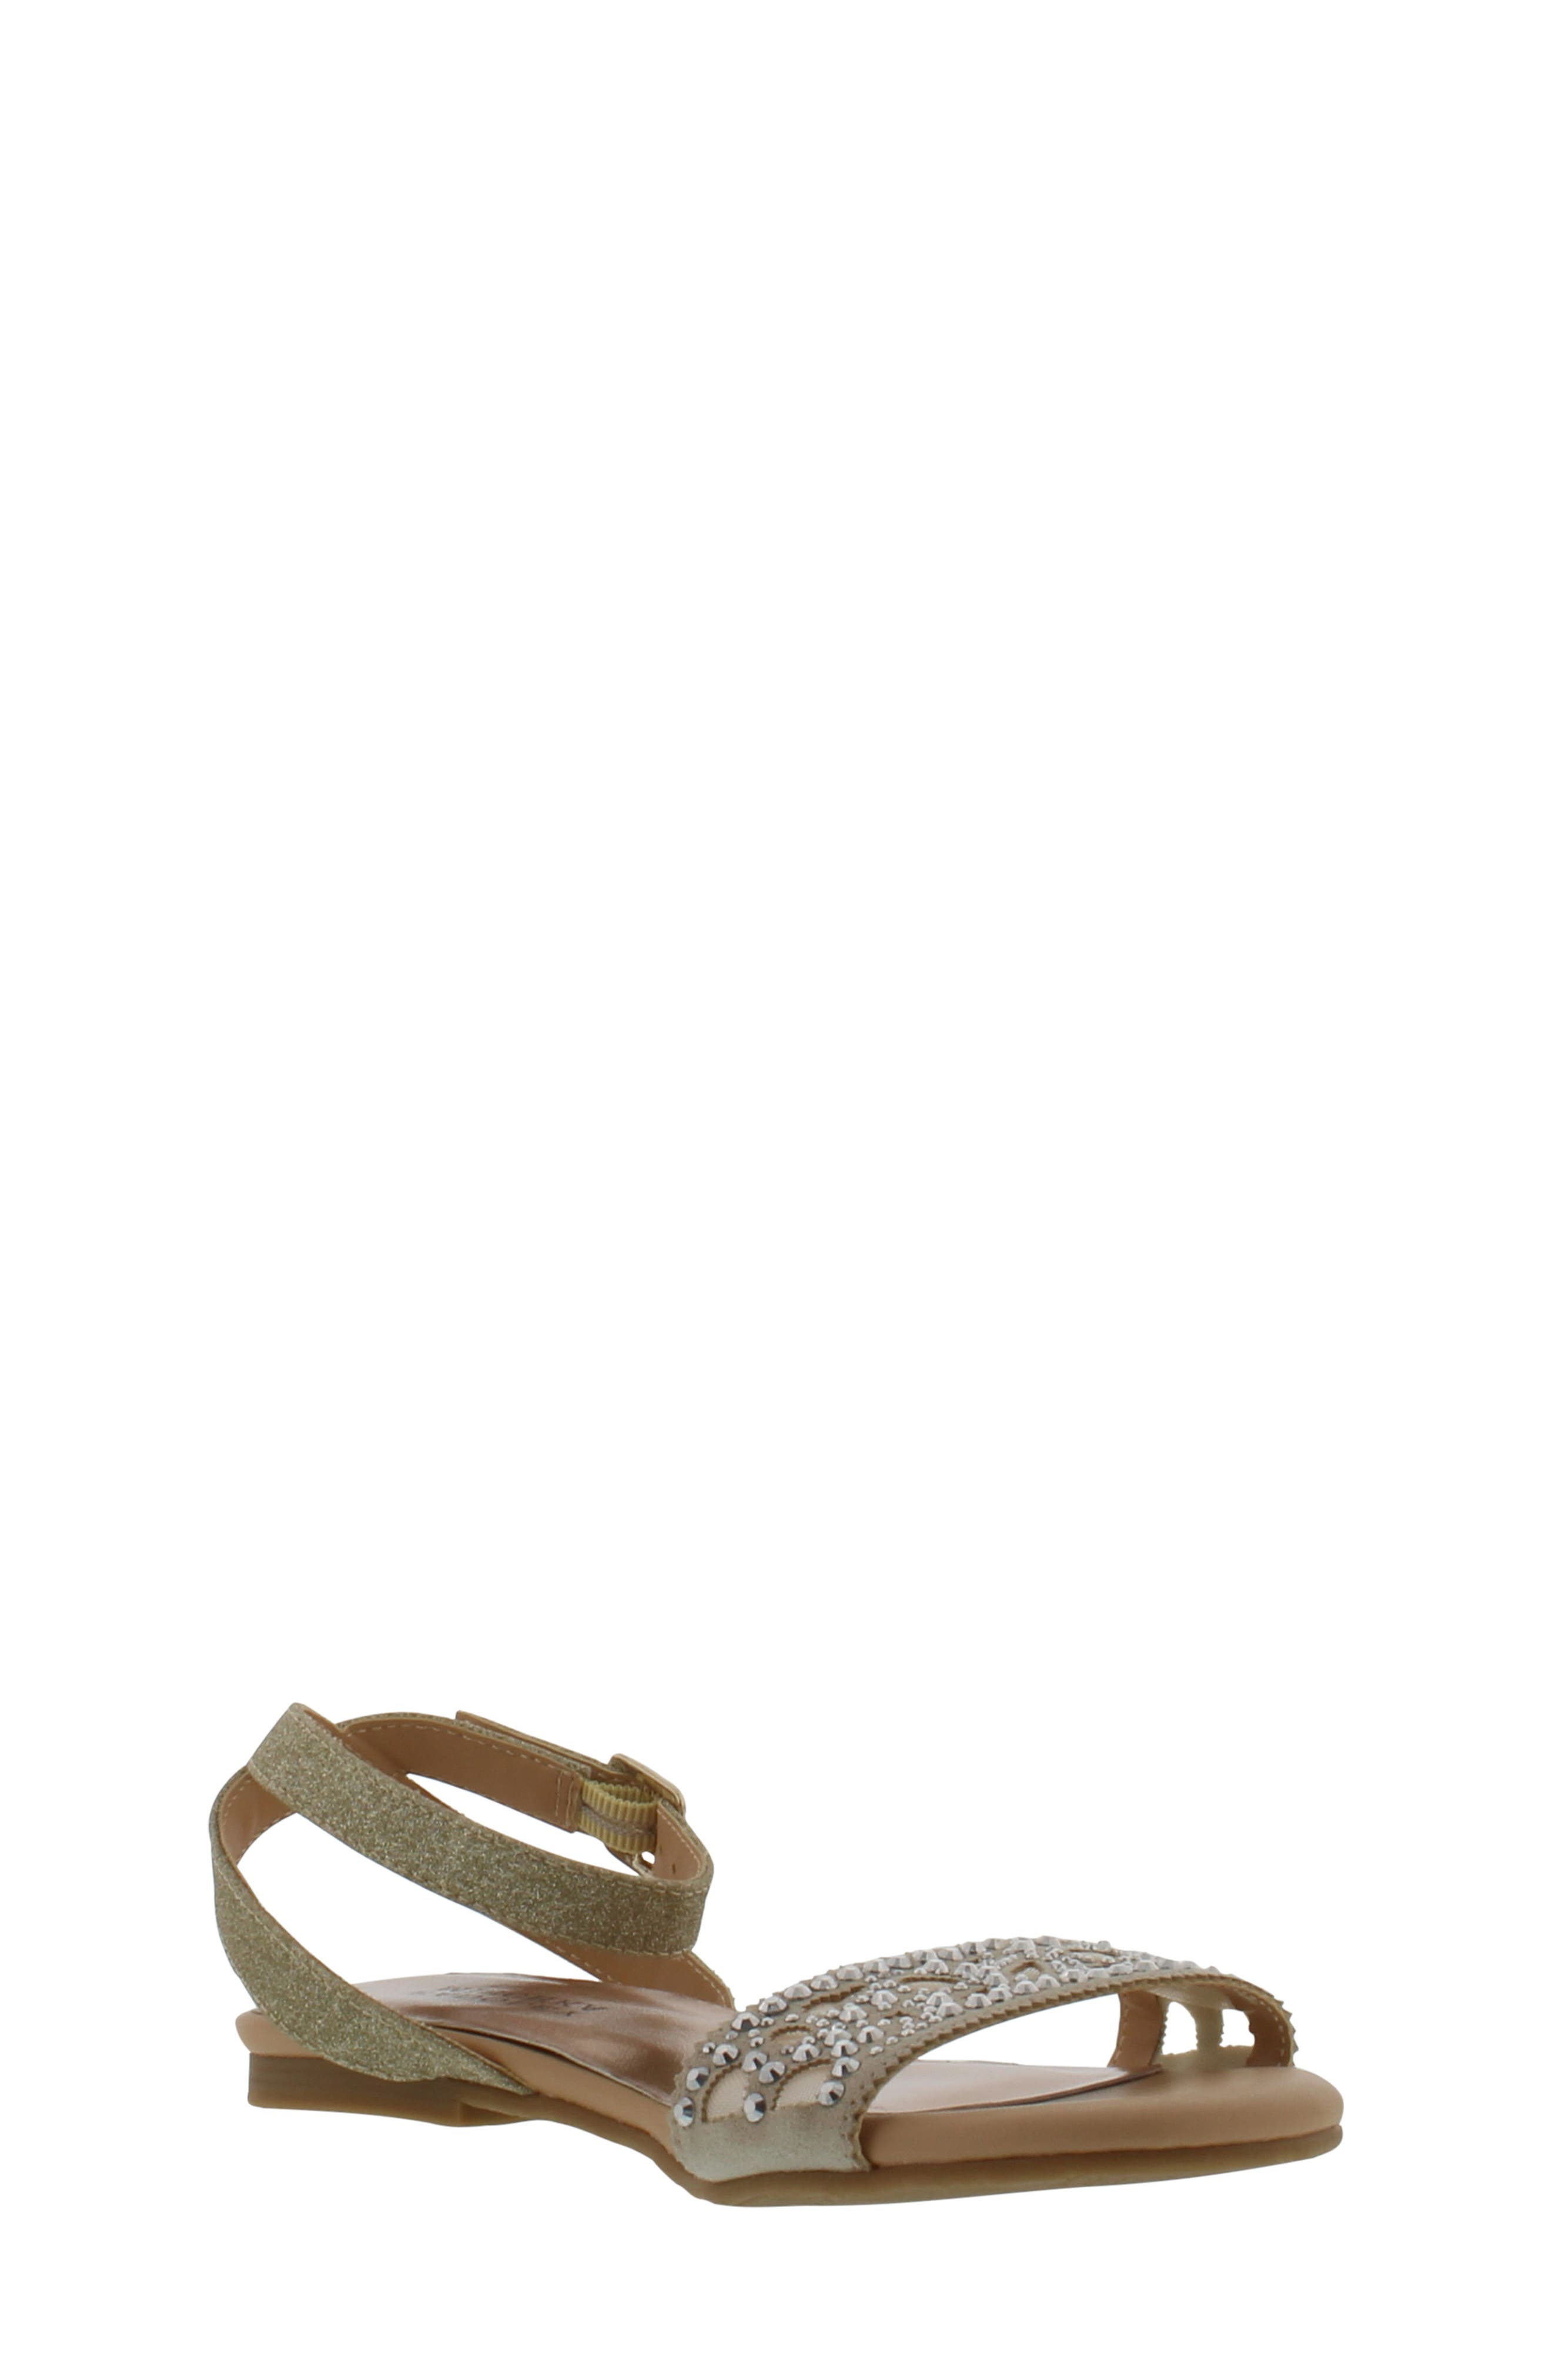 Badgley Mischka Cara Embellished Sandal (Toddler, Little Kid & Big Kid)